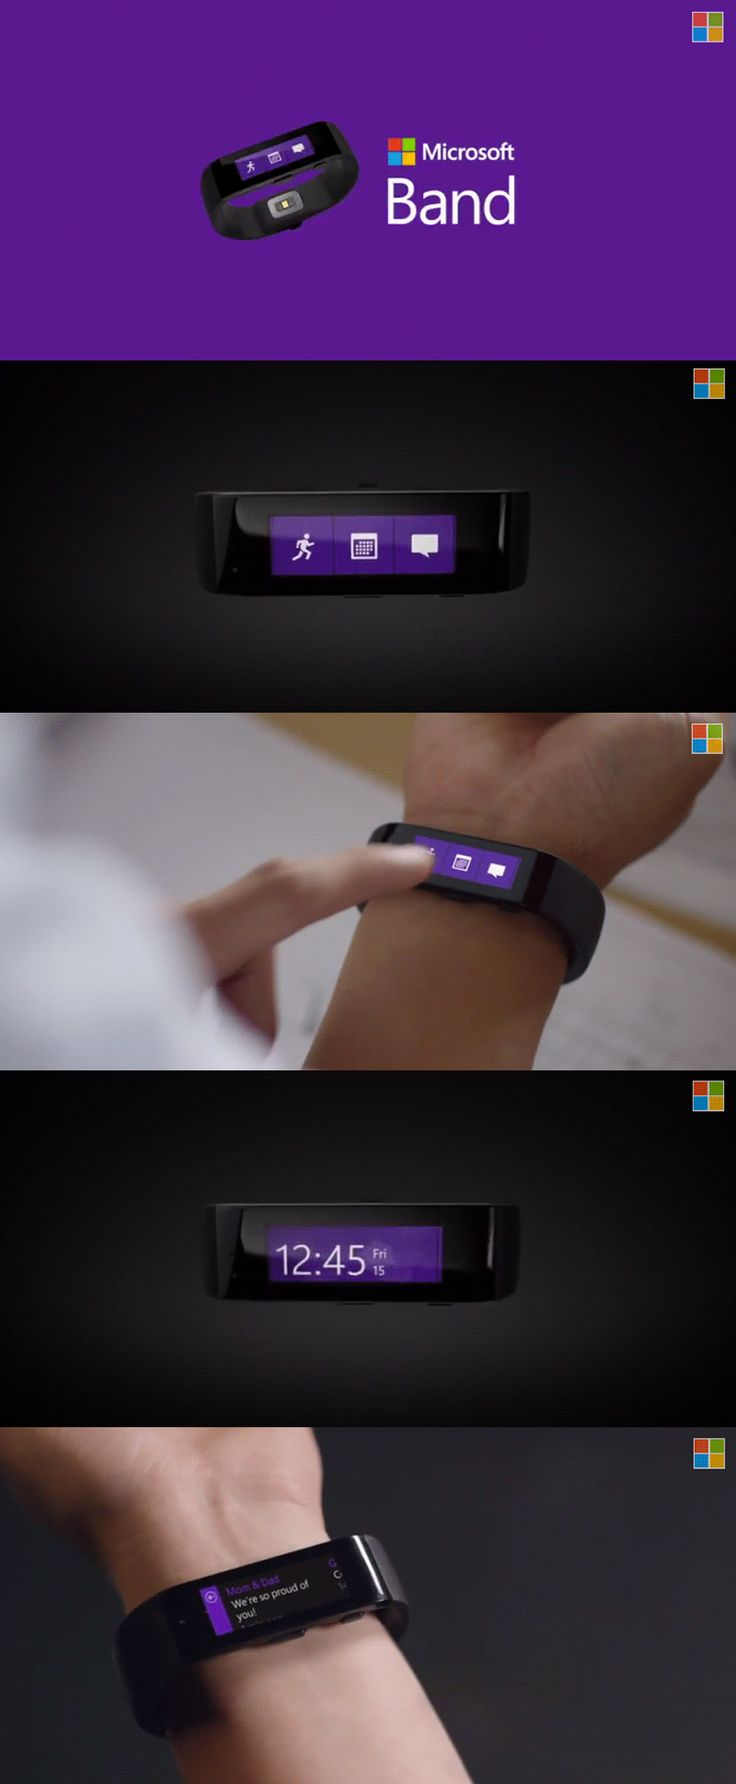 Microsoft announced it's first wearable, Microsoft Band. The companion Microsoft Health app is available on Windows Phone, iPhone and Android.